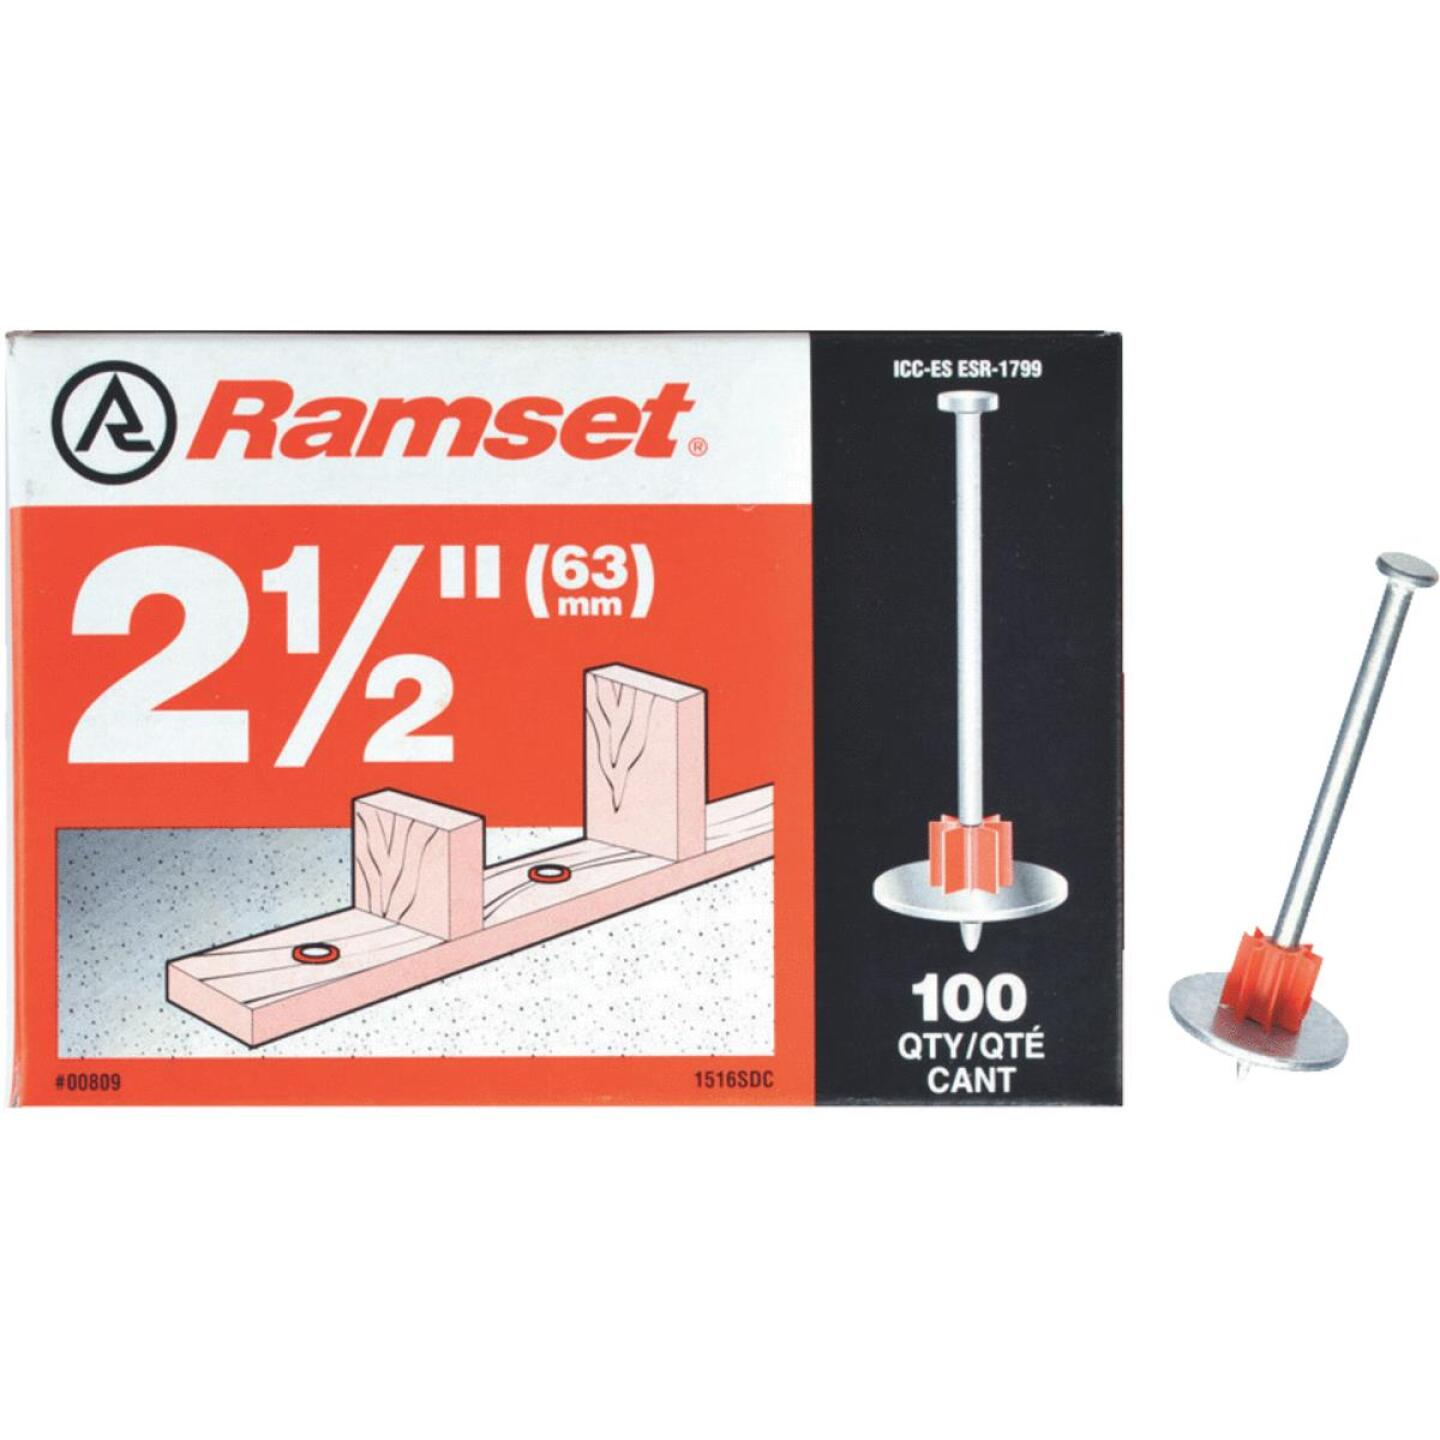 Ramset 2-1/2 In. Fastening Pin with Washer (100-Pack) Image 1